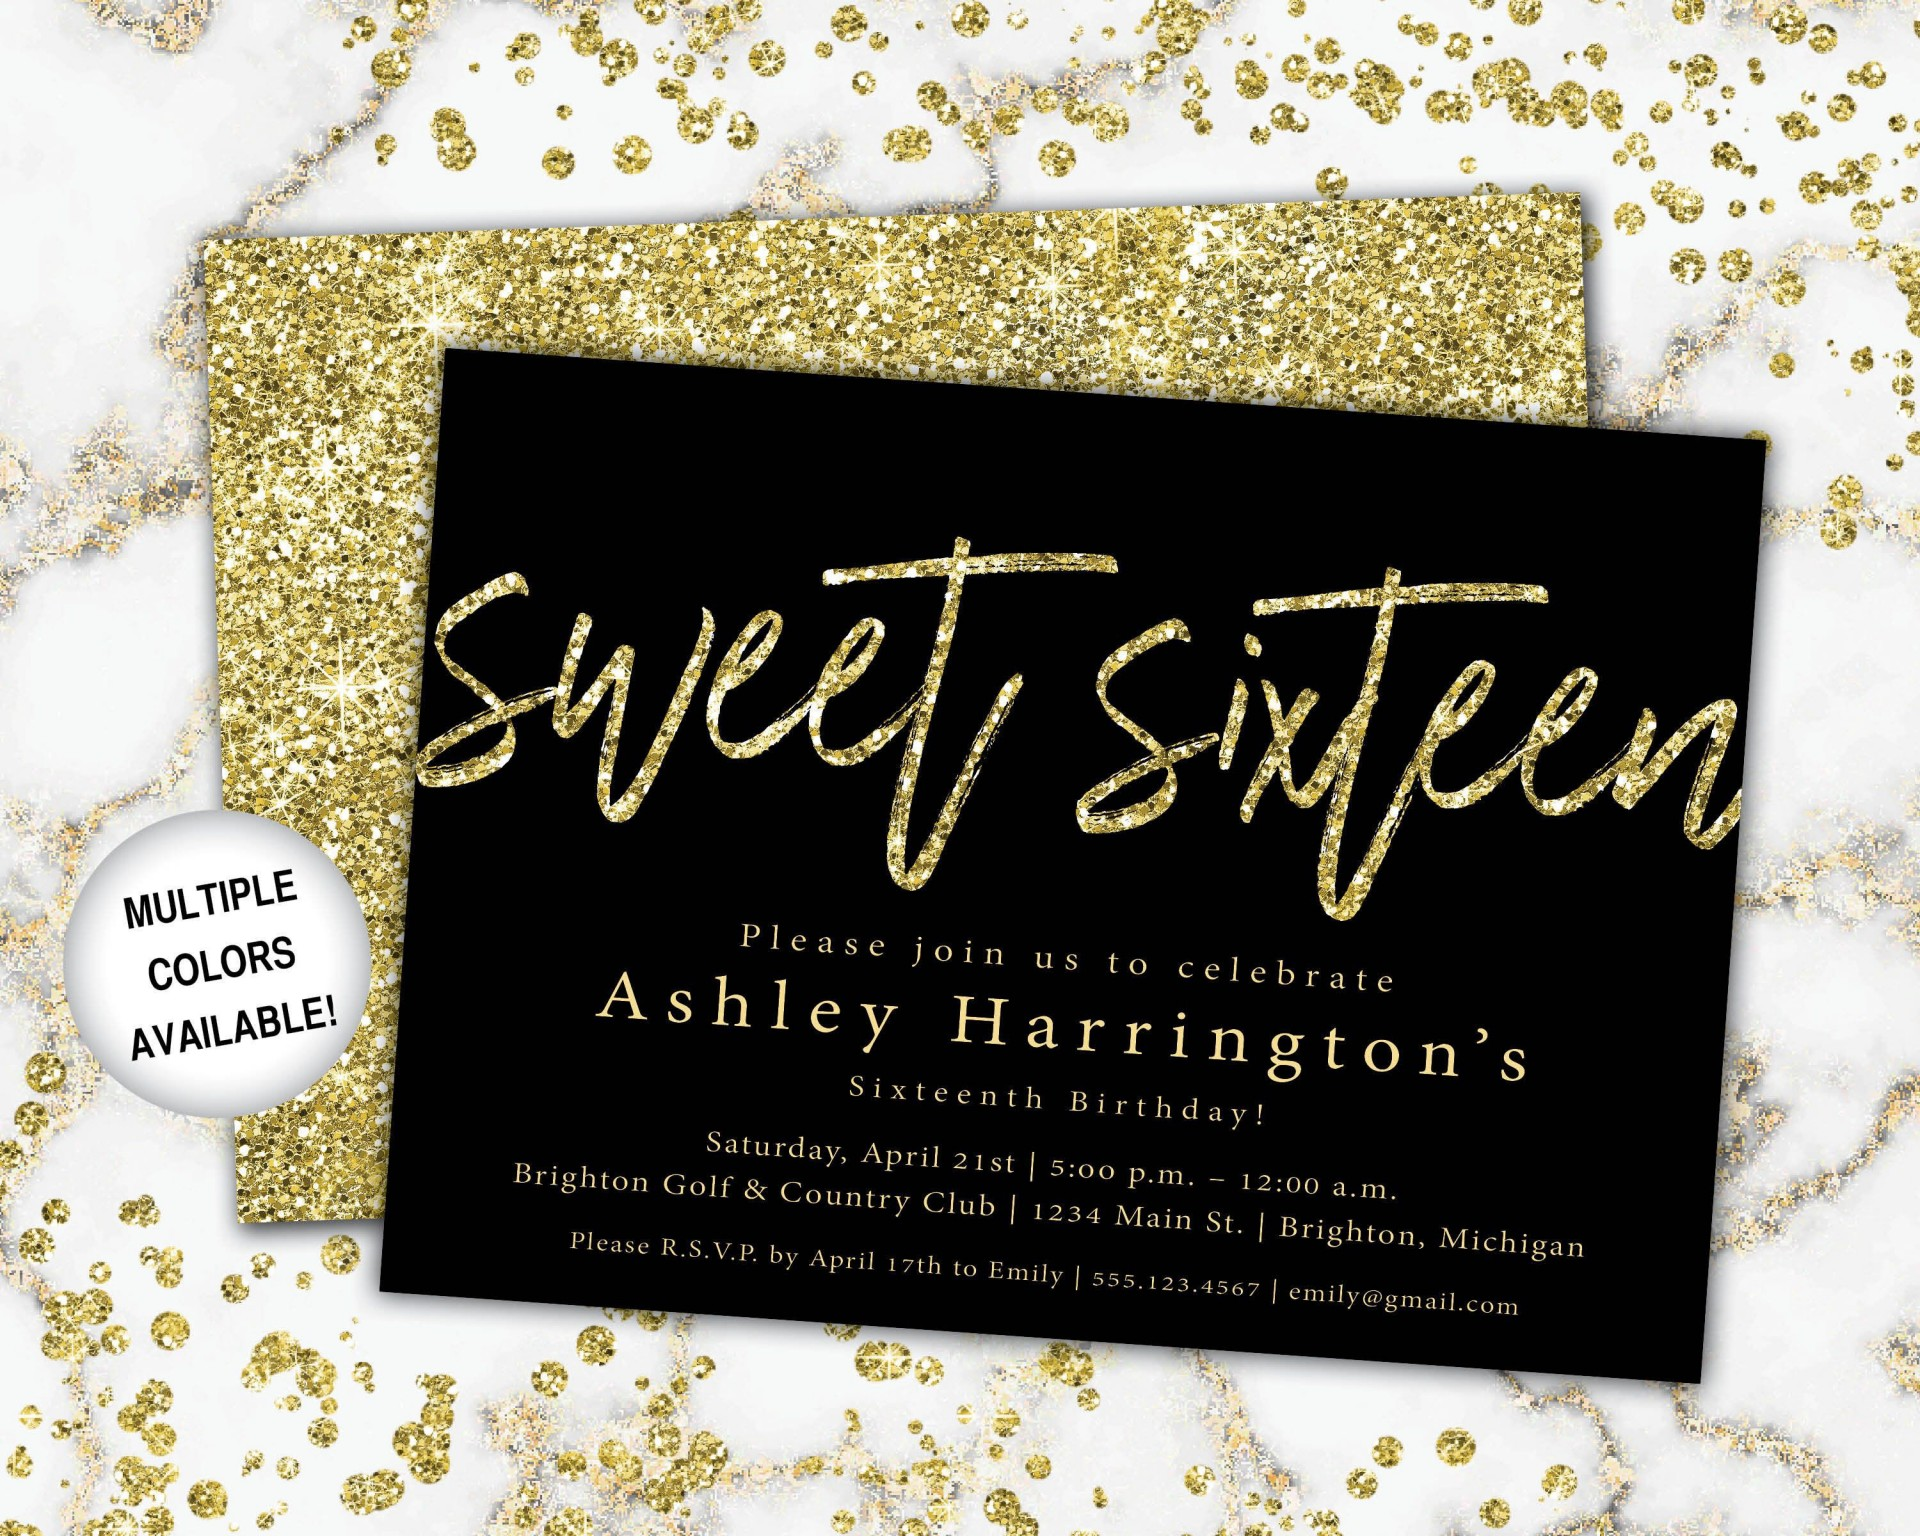 007 Stirring Sweet 16 Invite Template Concept  Templates Surprise Party Invitation Birthday Free 16th1920